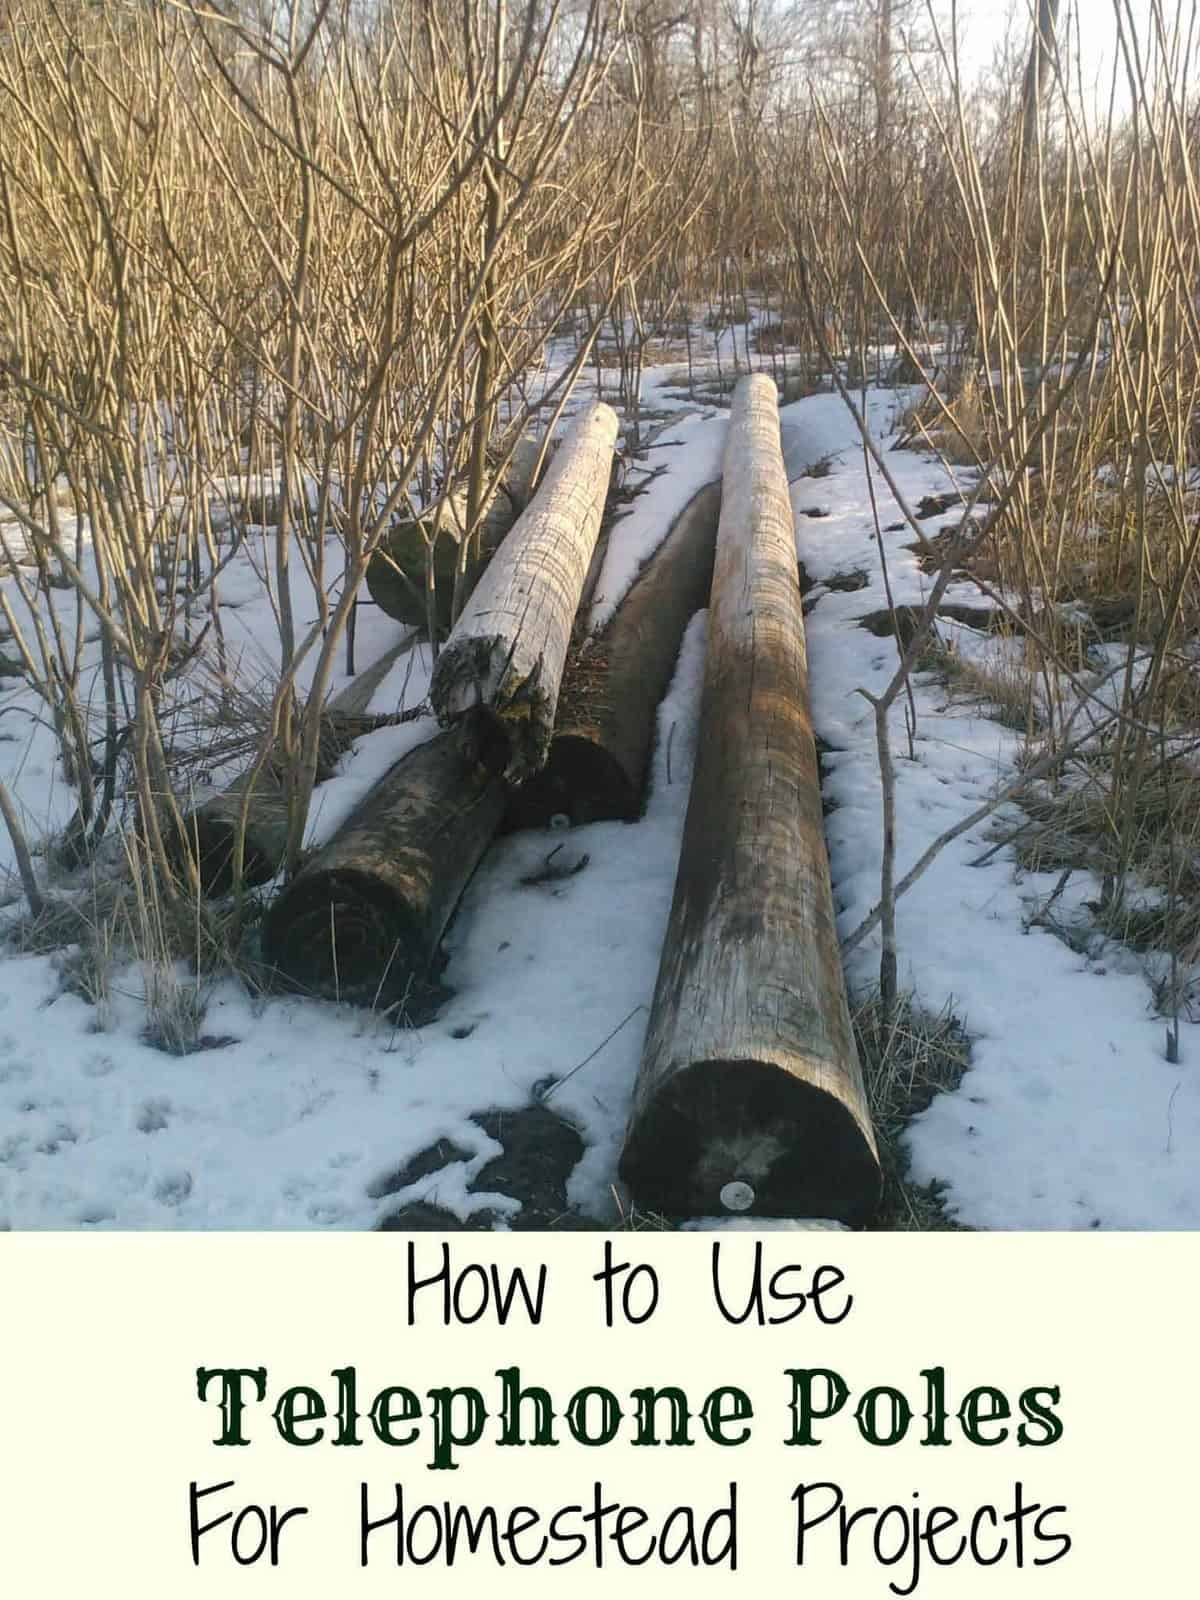 5 Ways to Use Telephone Poles on the Homestead